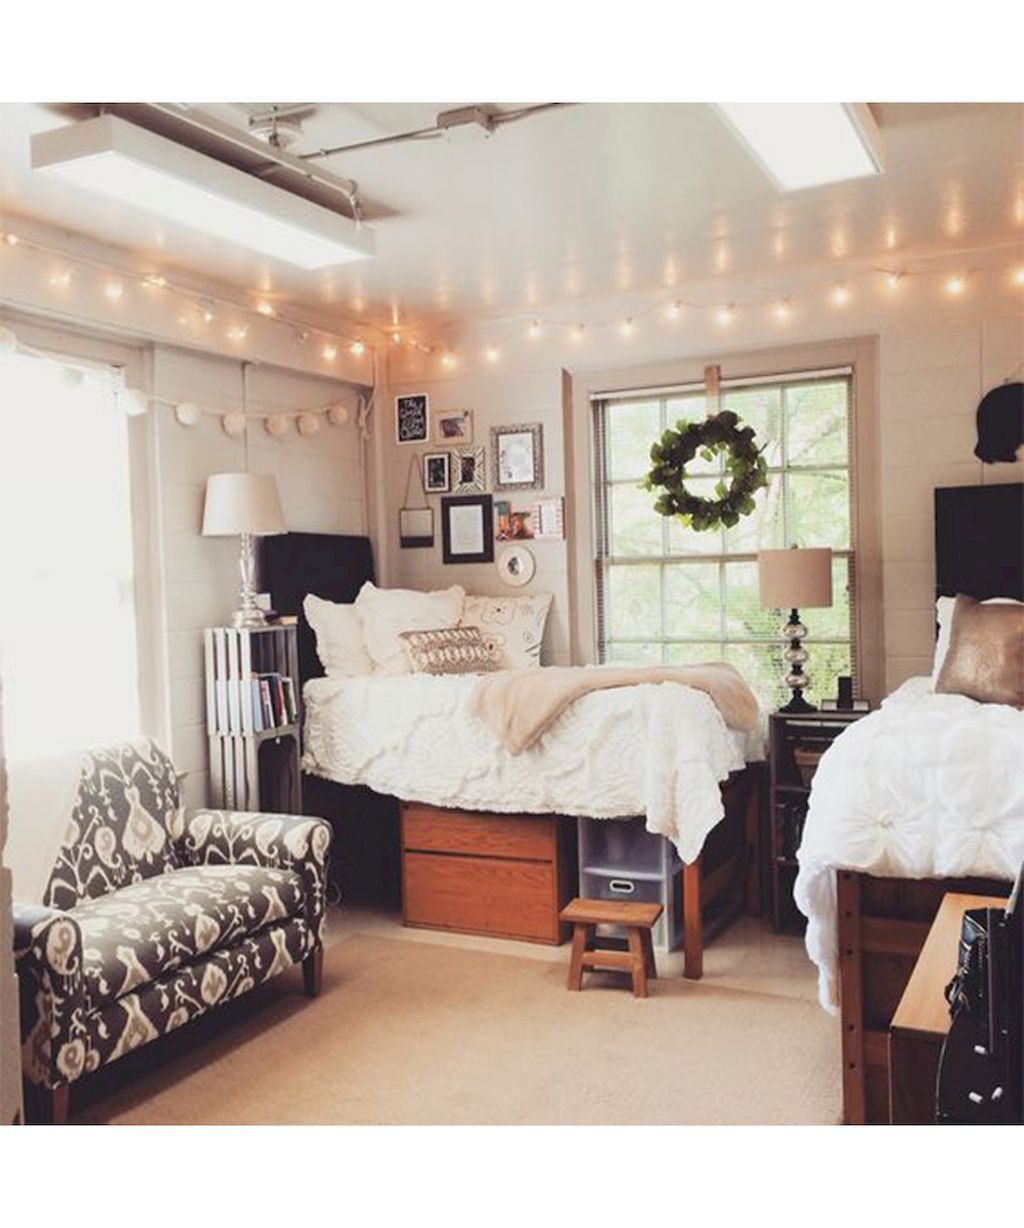 Diy Dorm Room Decorating Ideas 10 Diyhomedecordorm